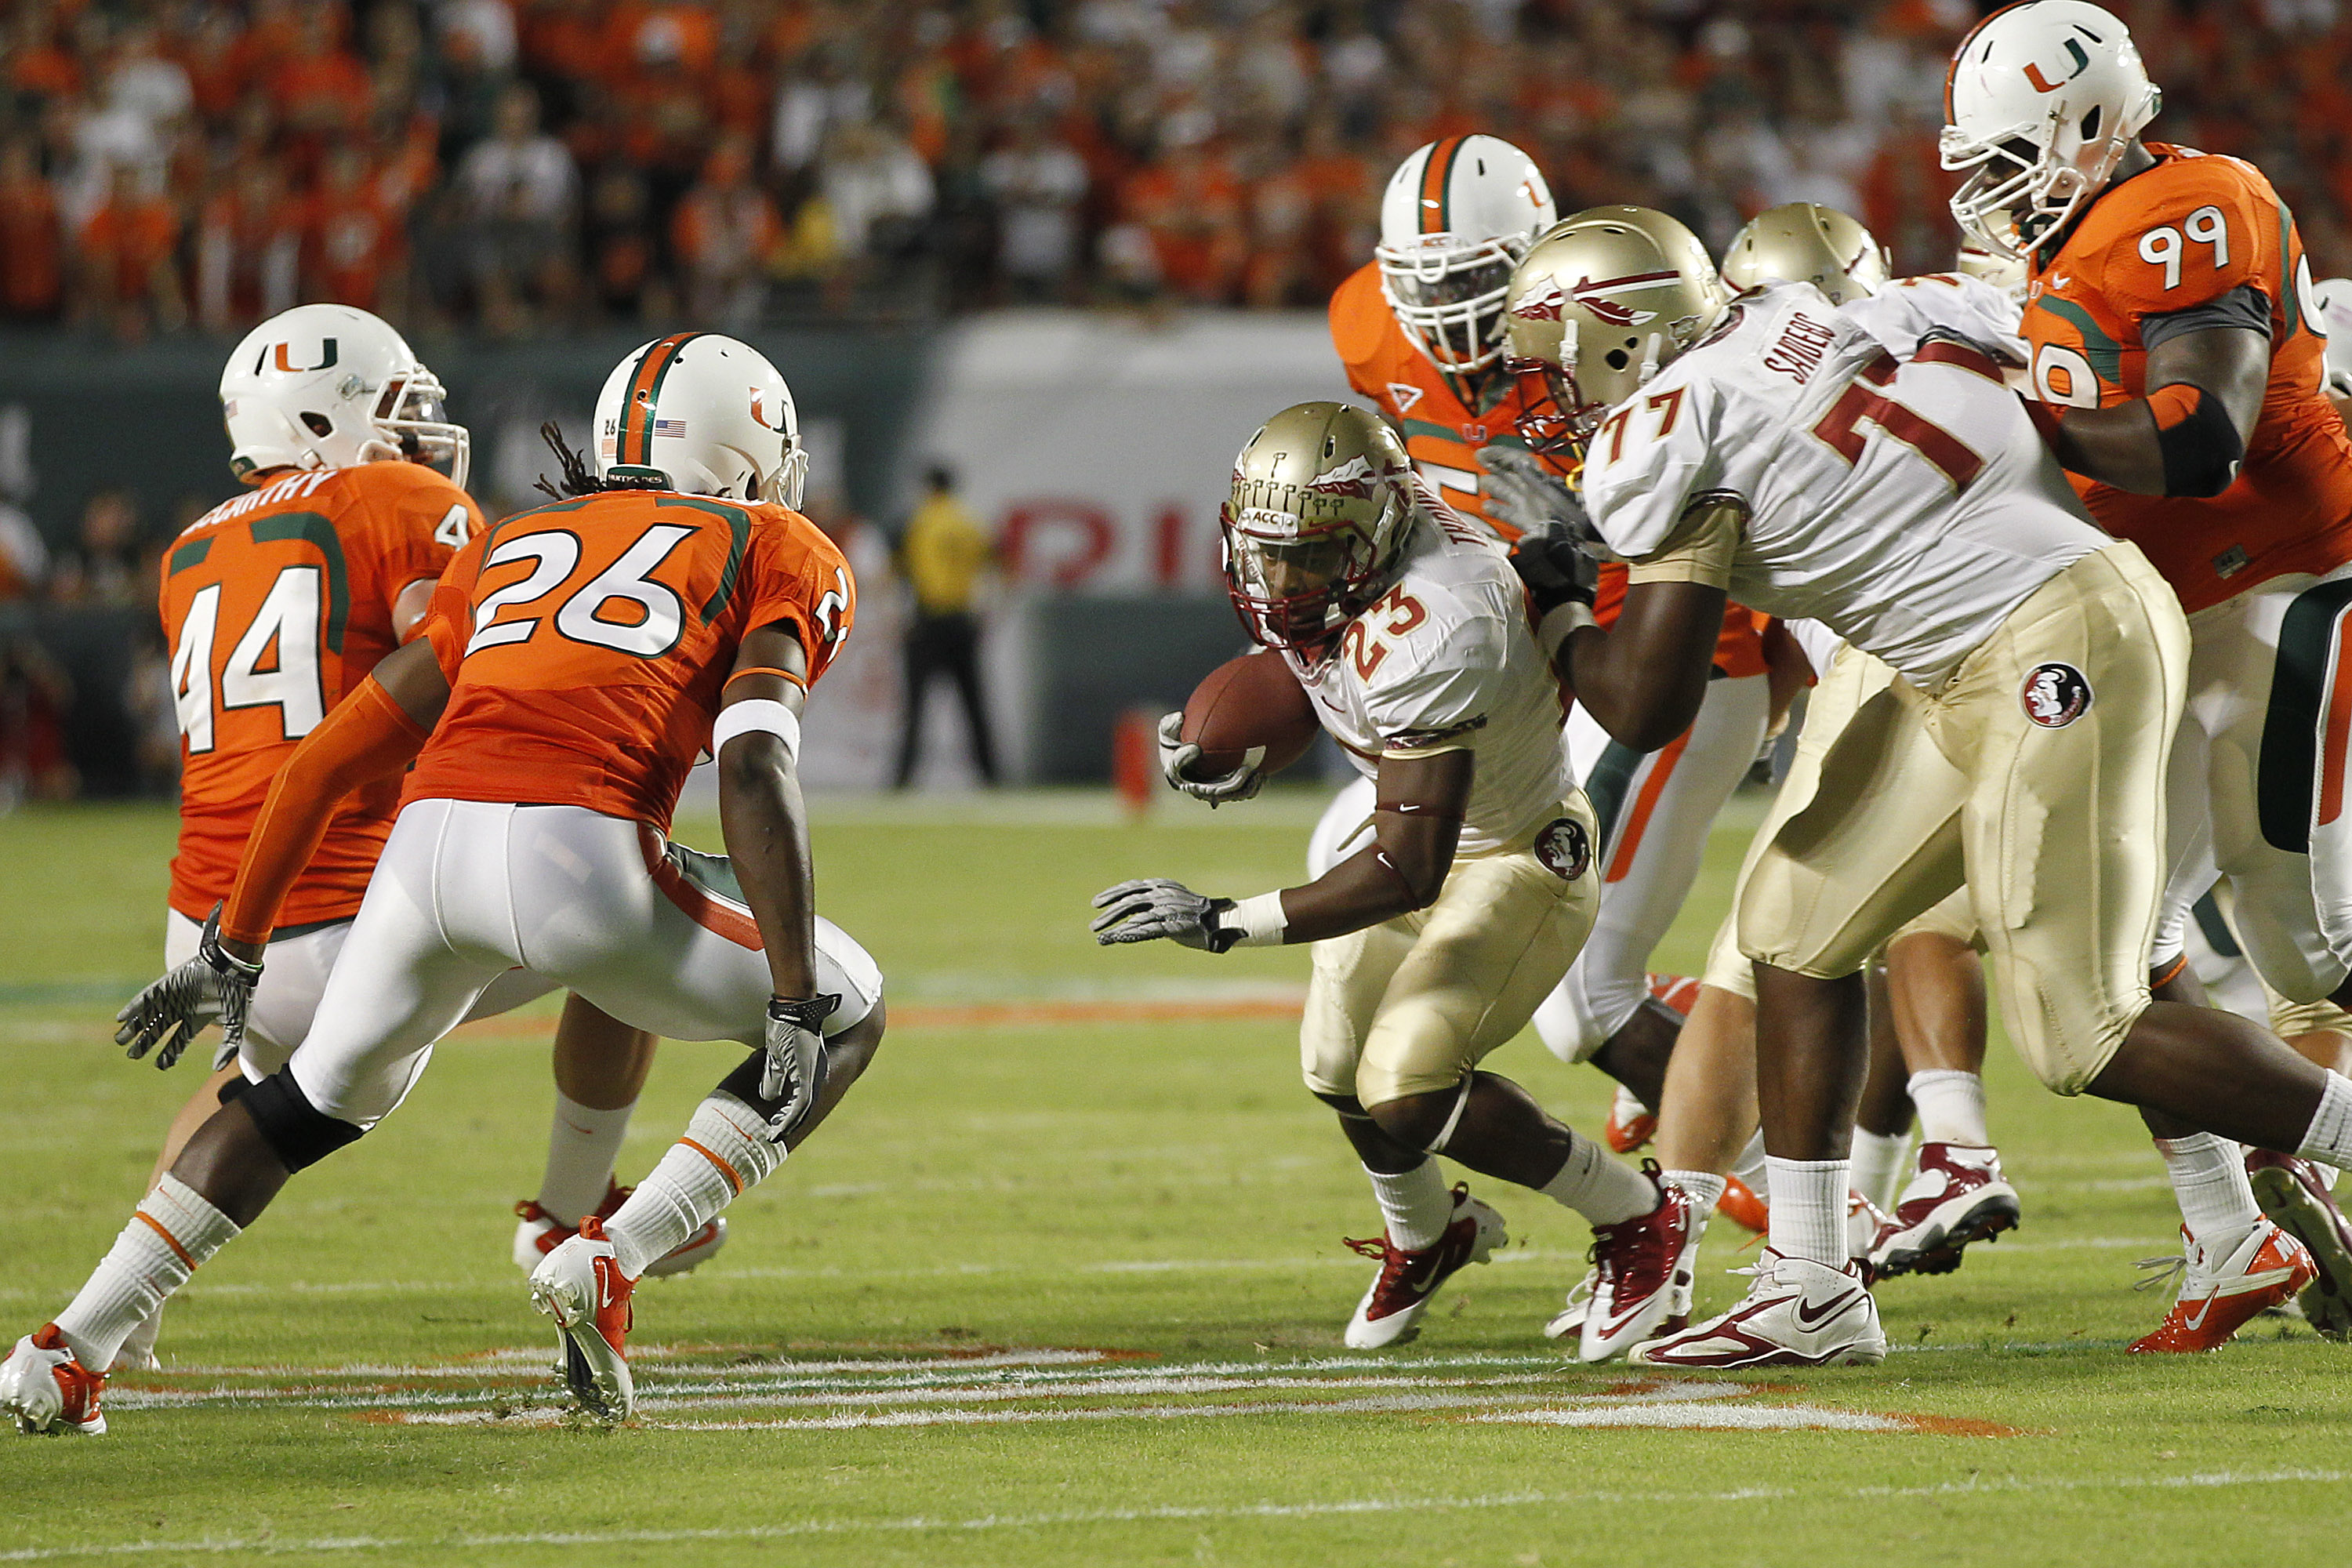 MIAMI, FL - OCTOBER 9: Chris Thompson #23 of the Florida State Seminoles runs with the ball against the Miami Hurricanes on October 9, 2010 at Sun Life Stadium in Miami, Florida. (Photo by Joel Auerbach/Getty Images)